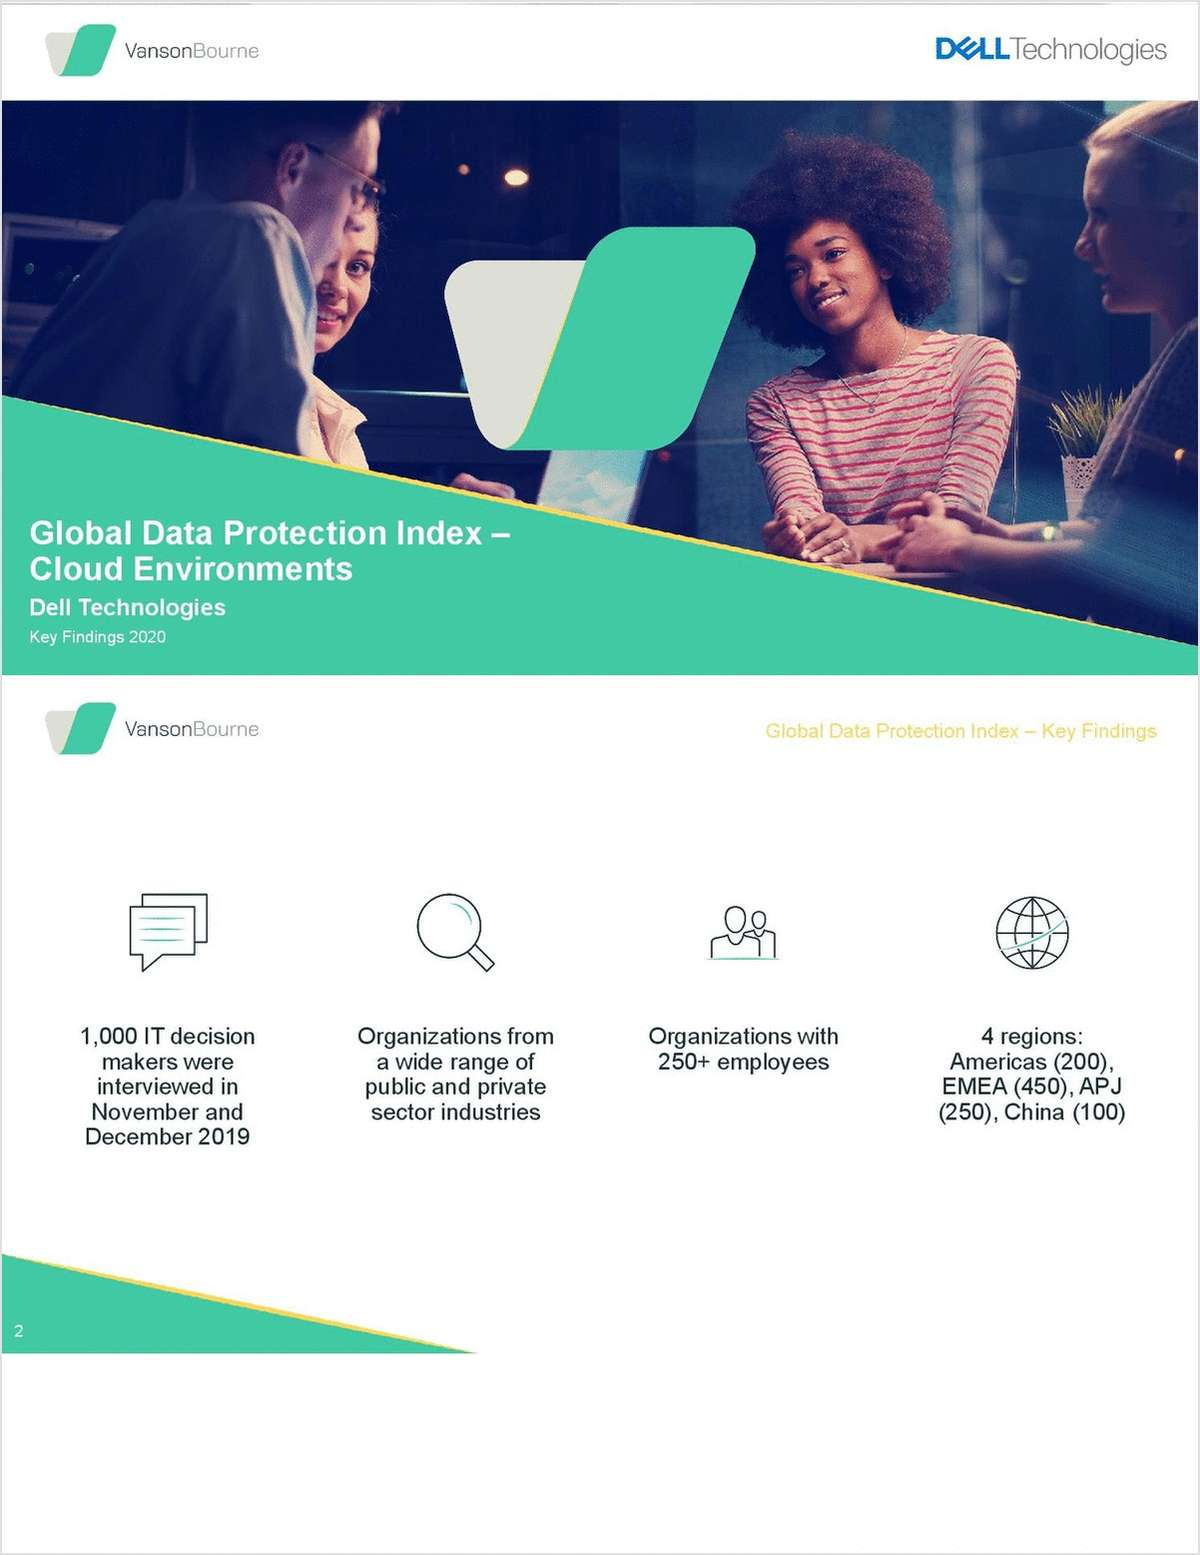 Global Data Protection Index -- Cloud Environments